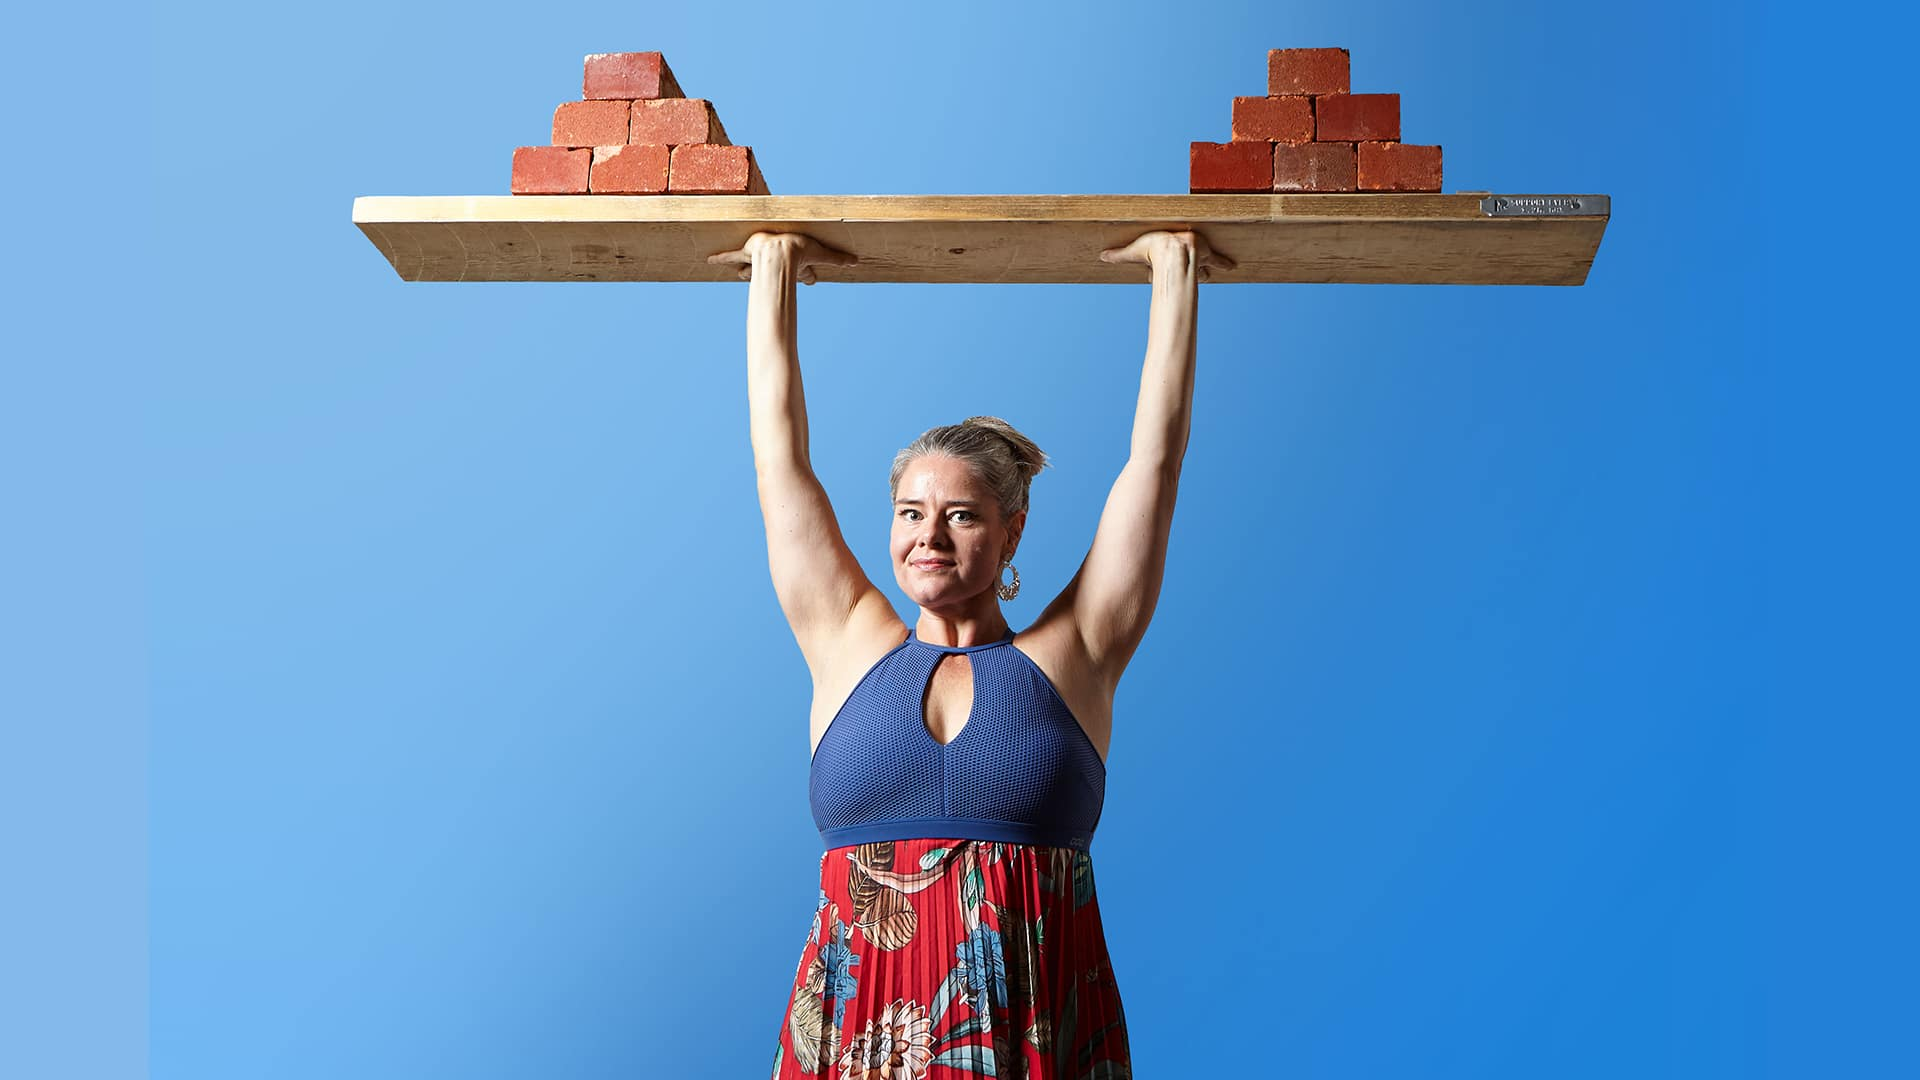 Charmaine Childs stands with her arms high above her head balancing a plank of wood on which a pile of bricks have been stacked on either end